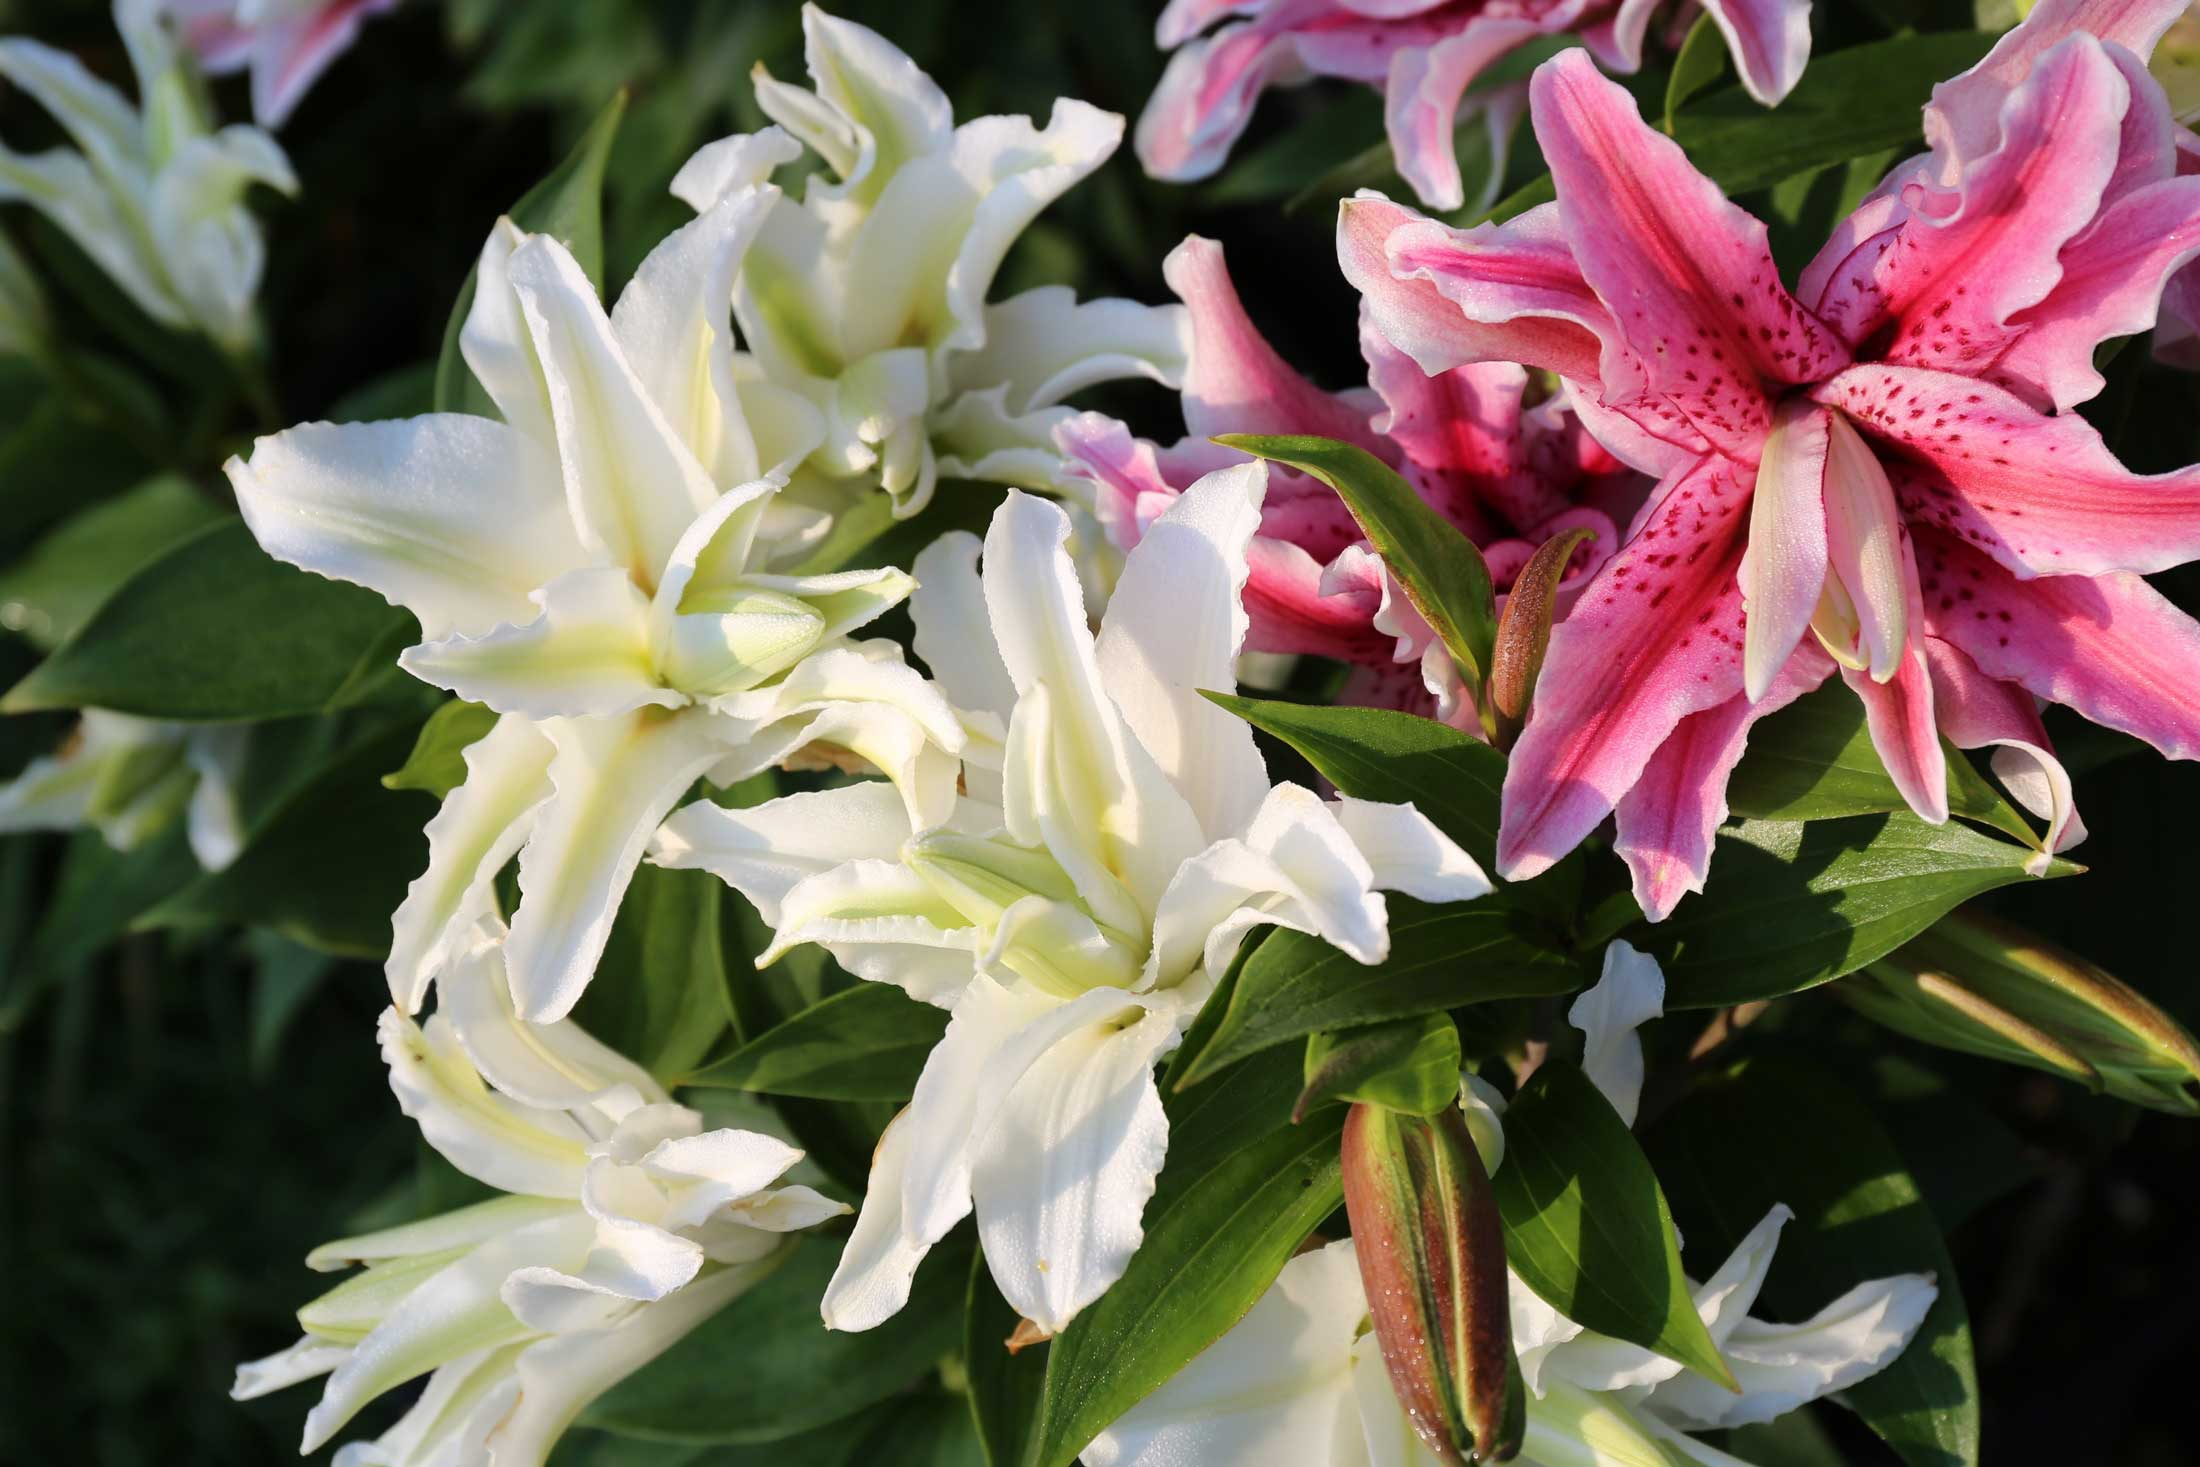 8-Tips-for-Growing-Better-Lilies—Longfield-Gardens